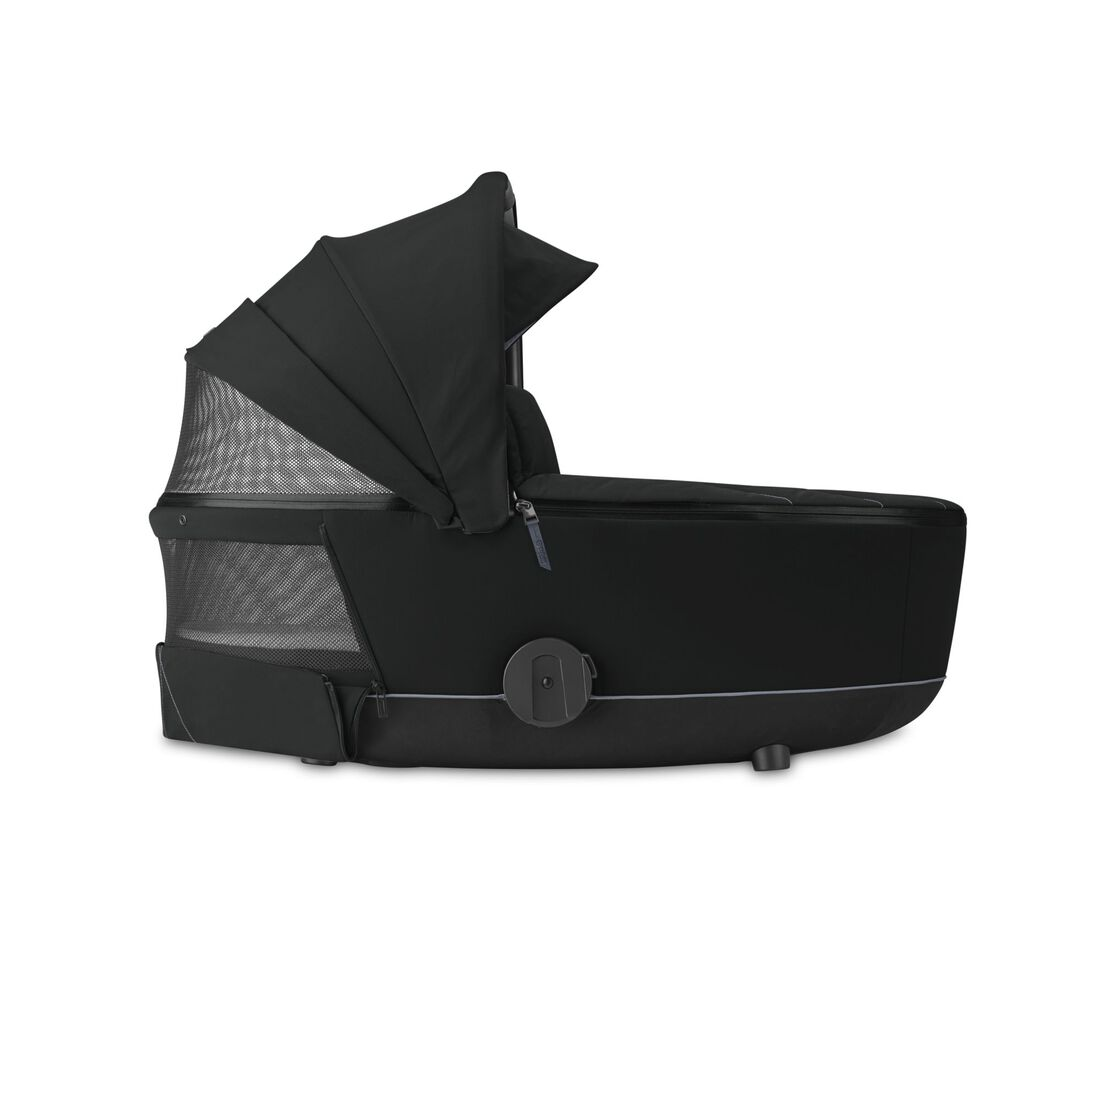 CYBEX Mios Lux Carry Cot - Deep Black in Deep Black large